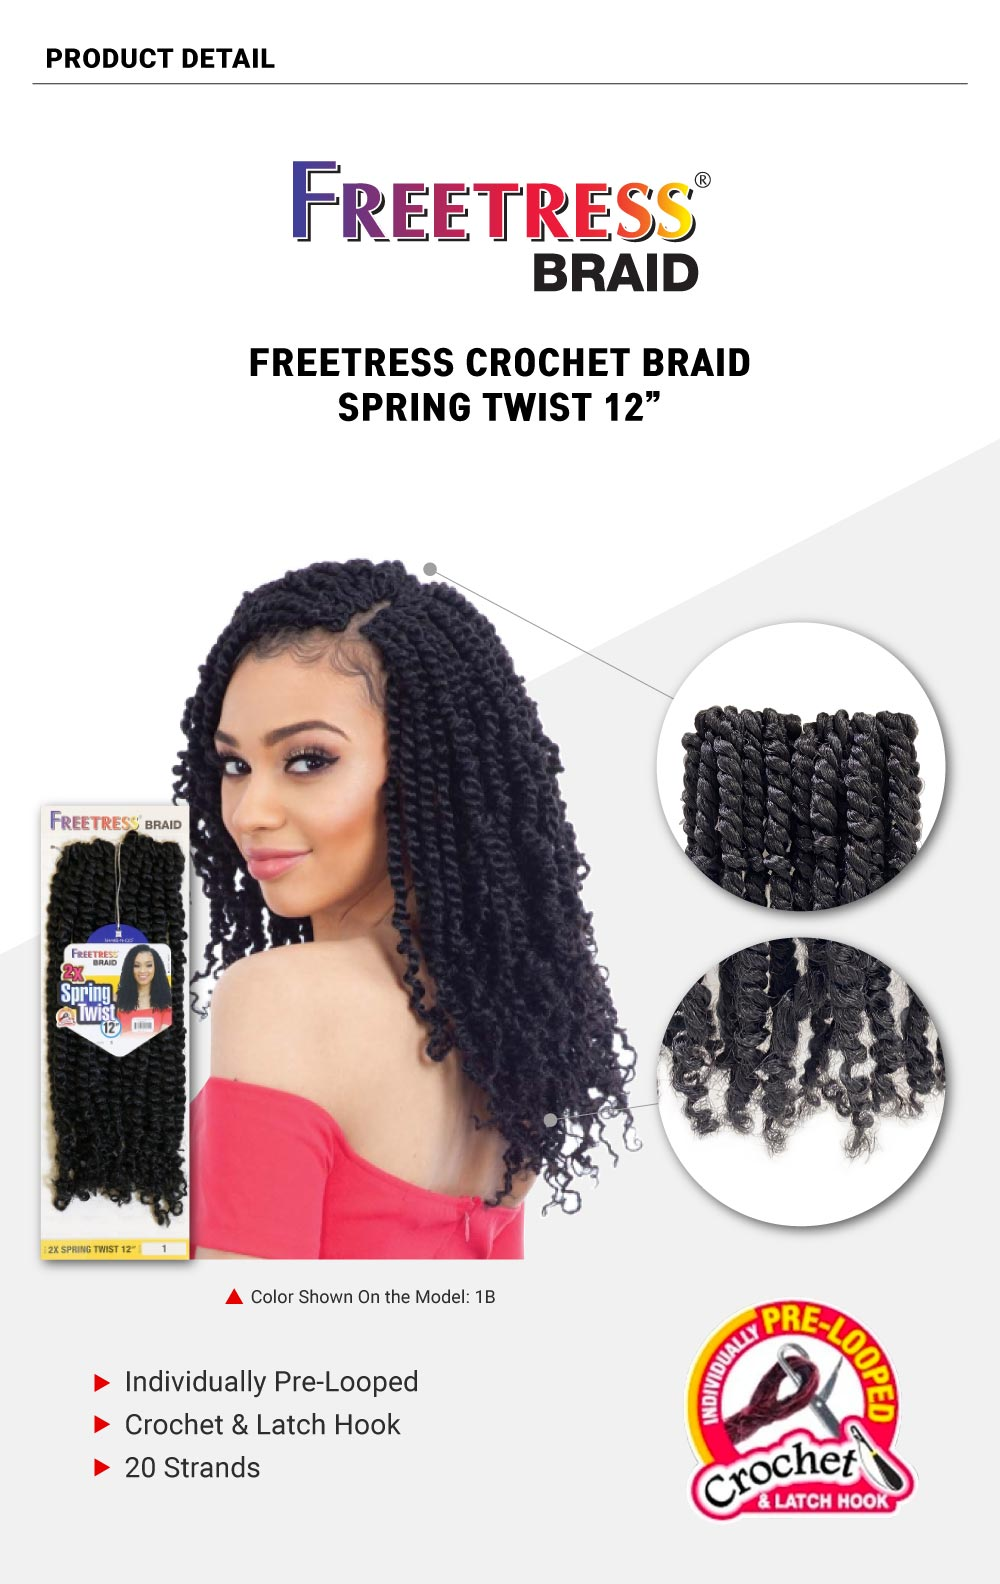 Freetress-Crochet-Braid-2X-Spring-Twist-12inch